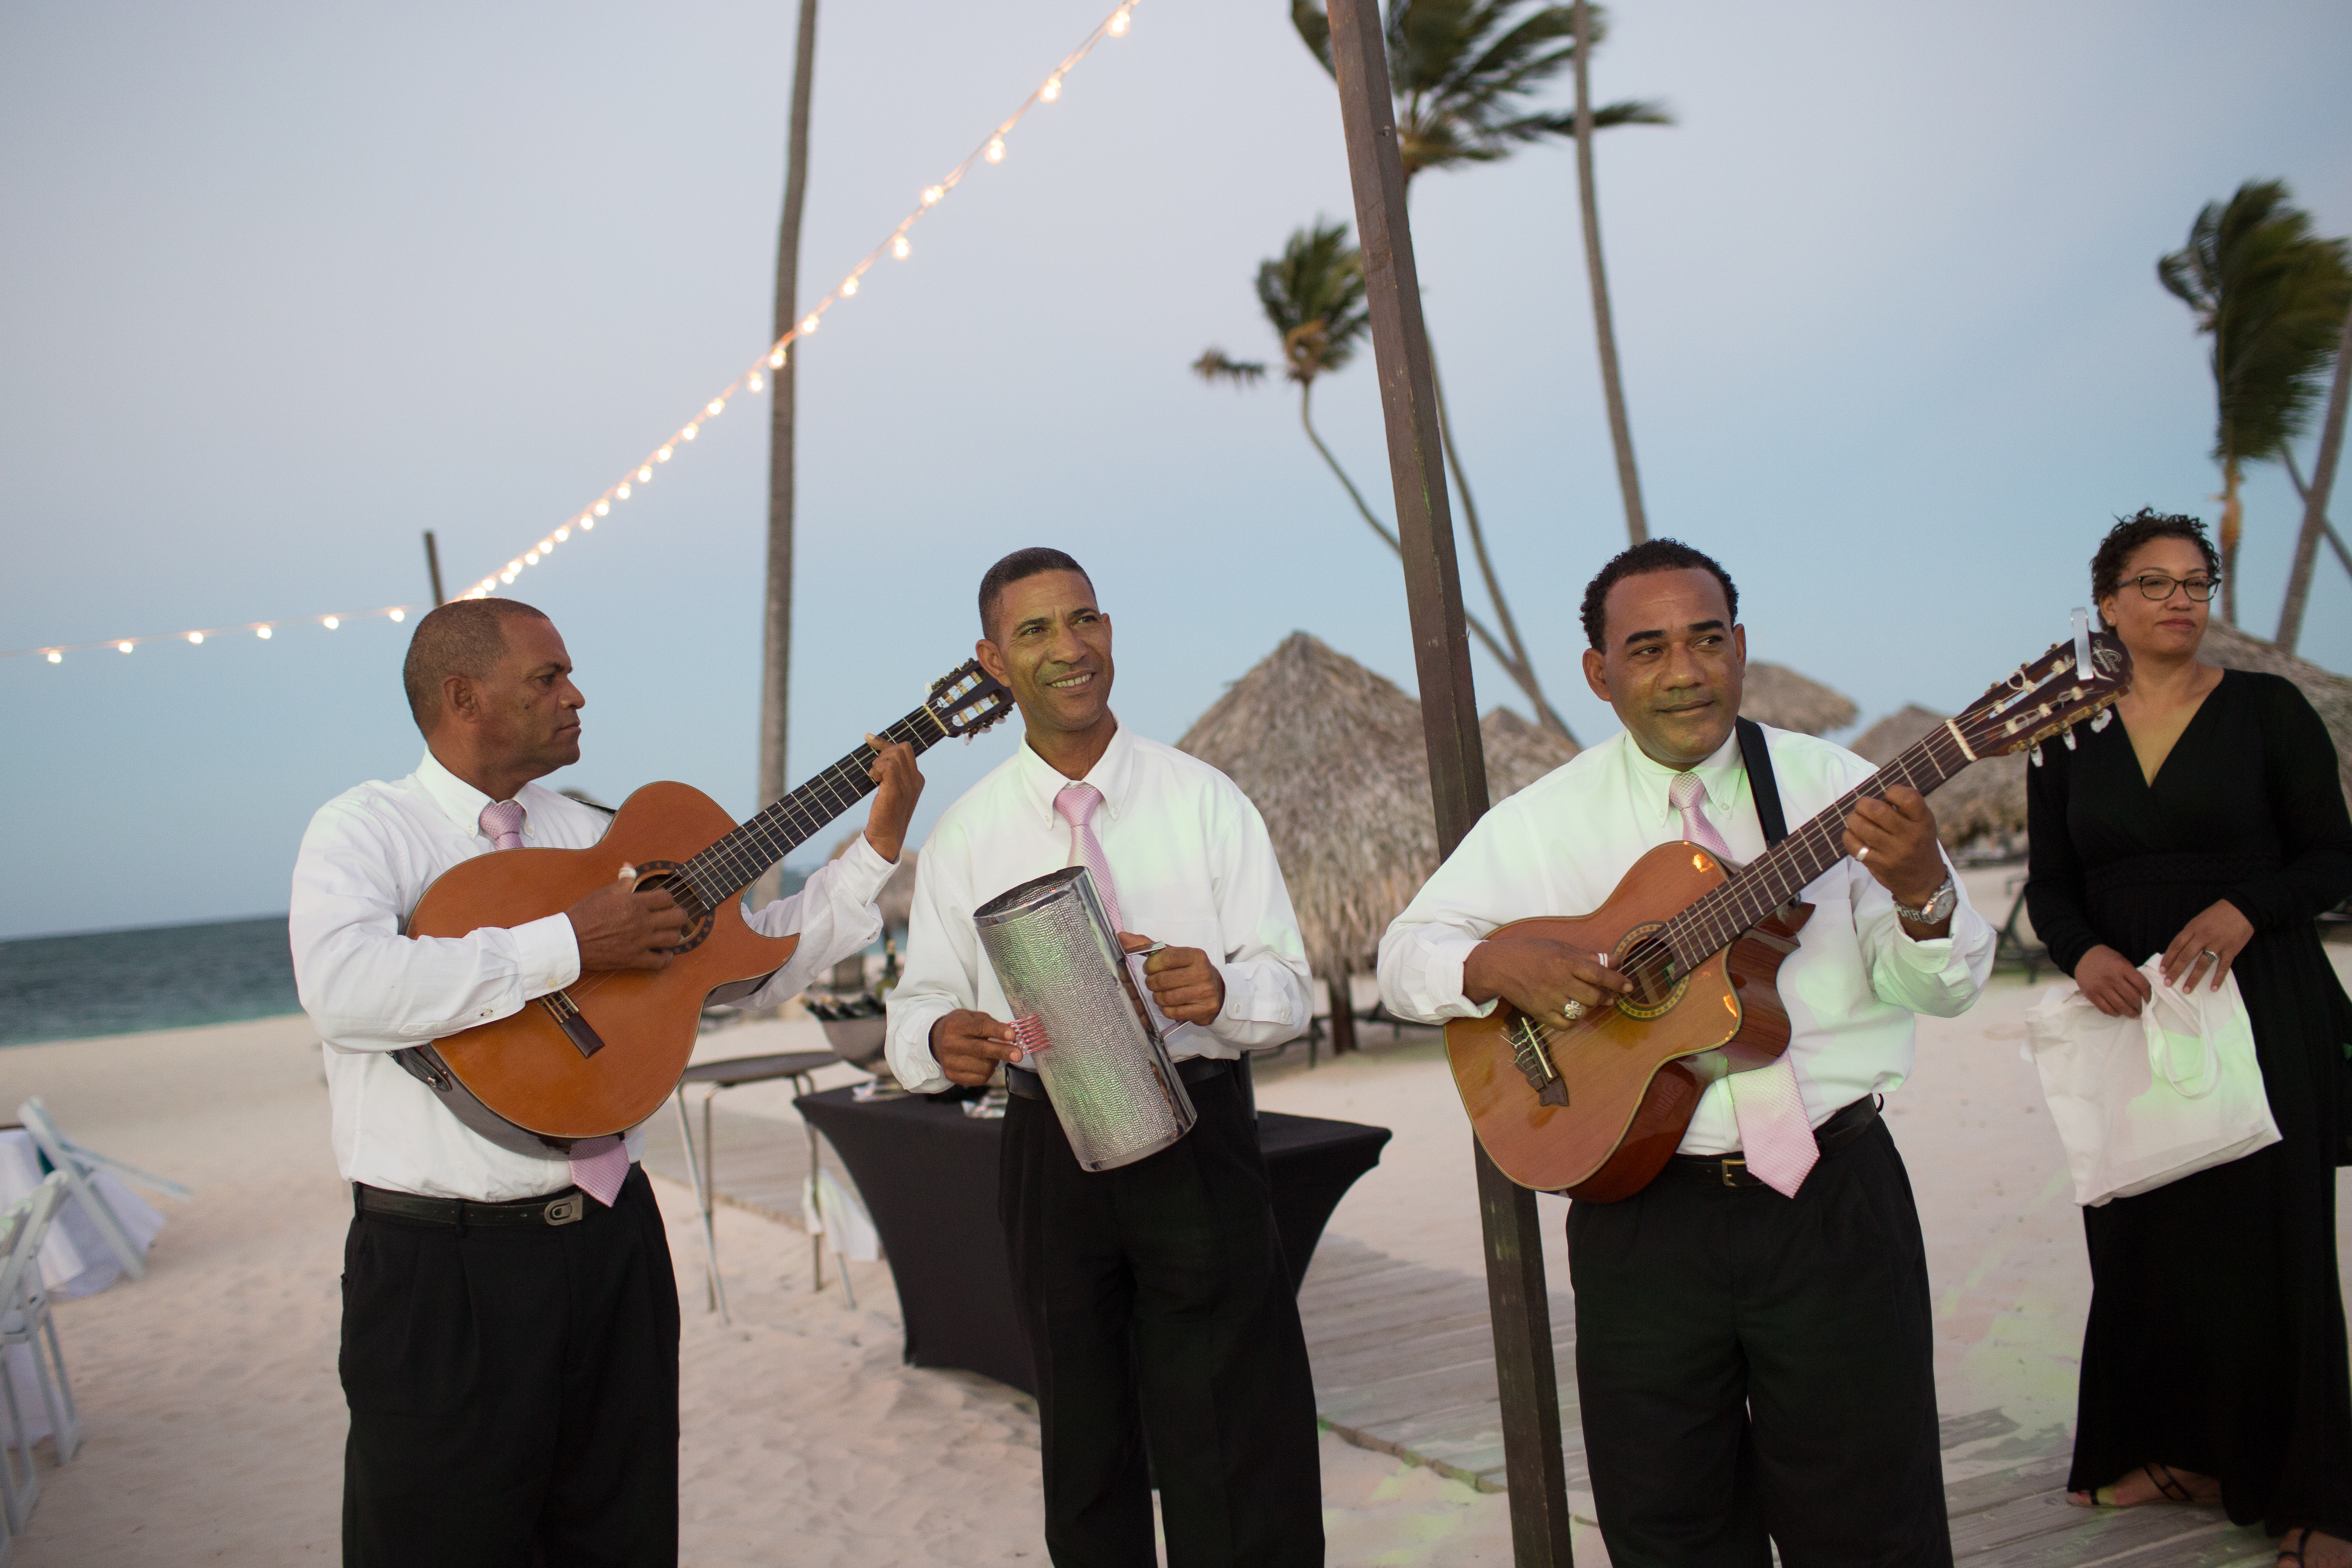 dominican band